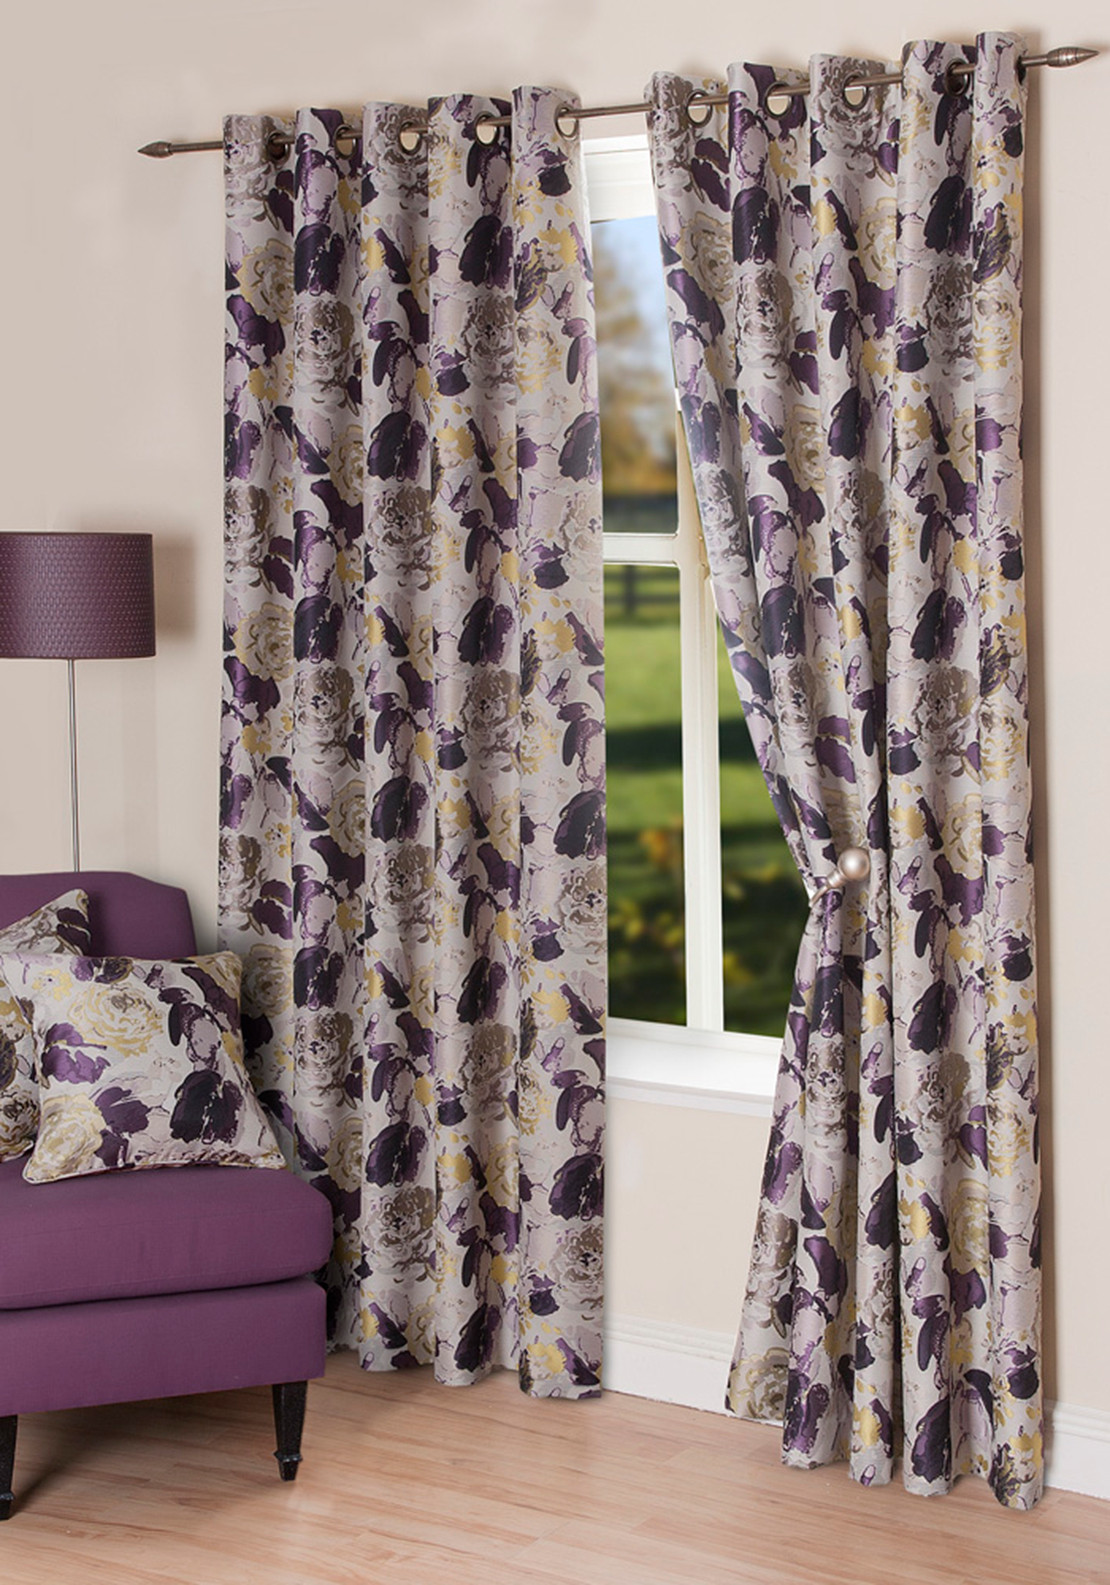 Scatterbox Freya Floral Eyelet Curtains, Purple Multi